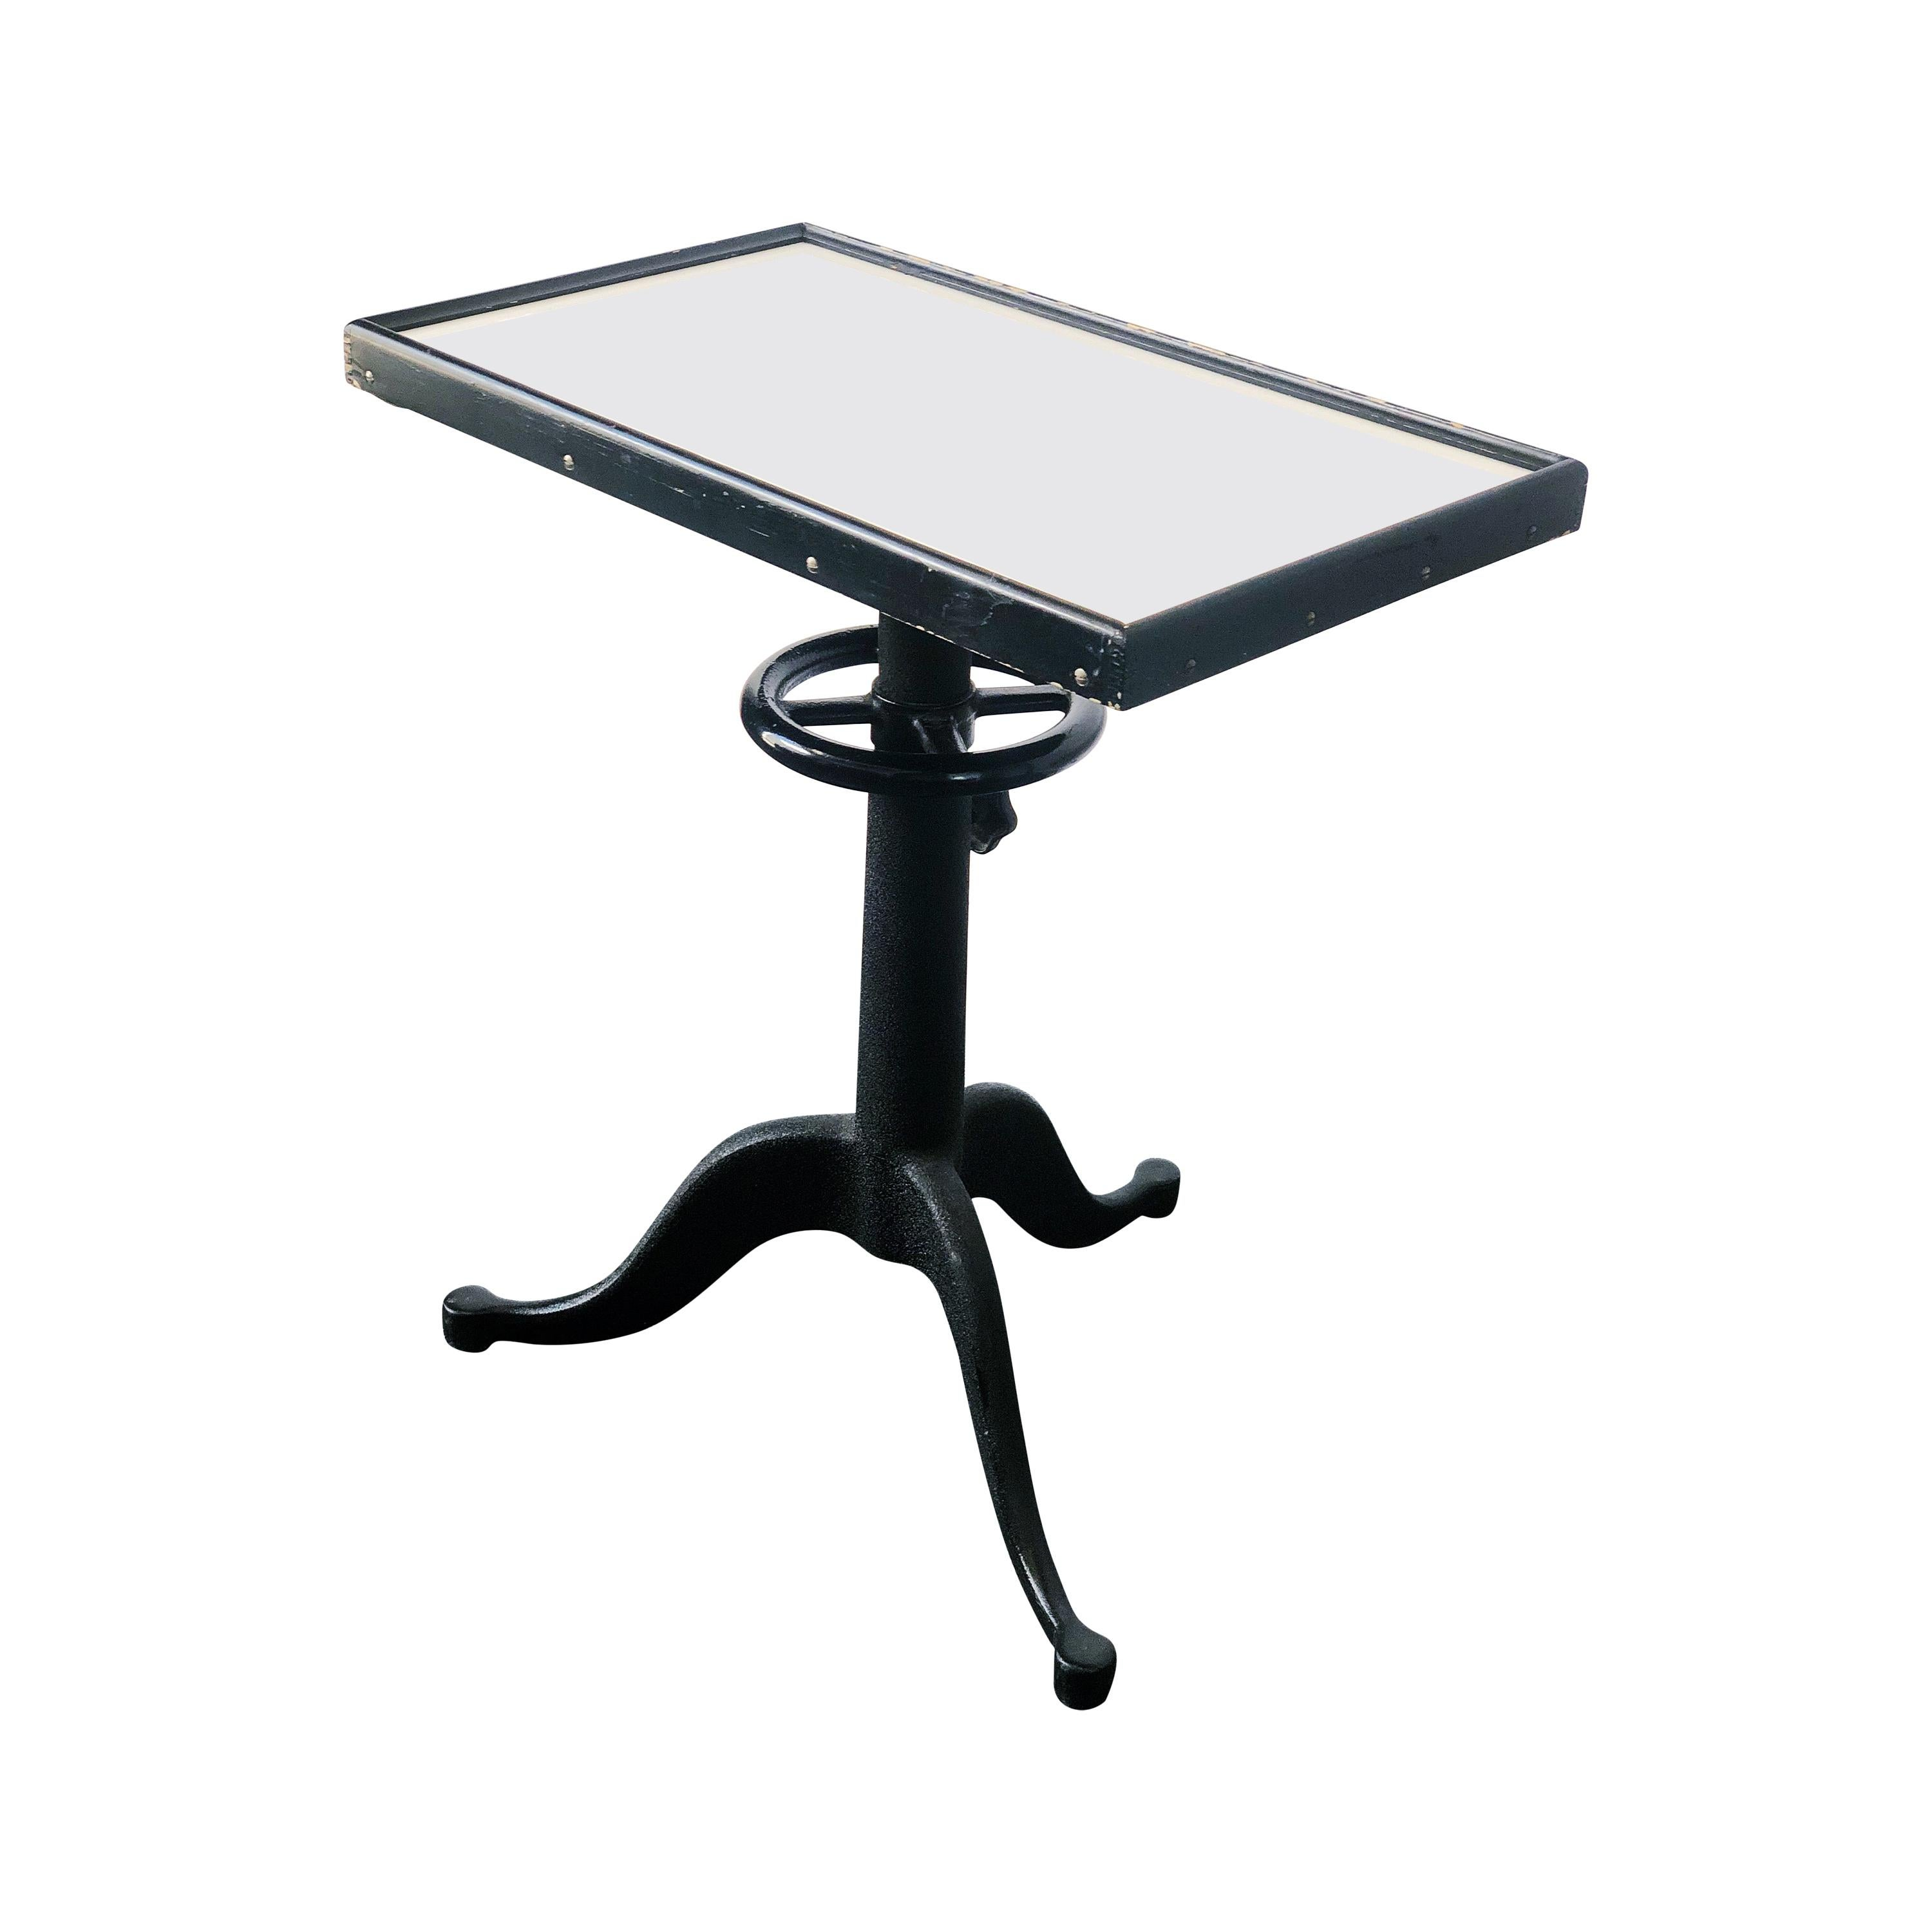 Vintage Optometrist Table with Opaque White Glass Top by Bausch & Lomb, c. 1940s